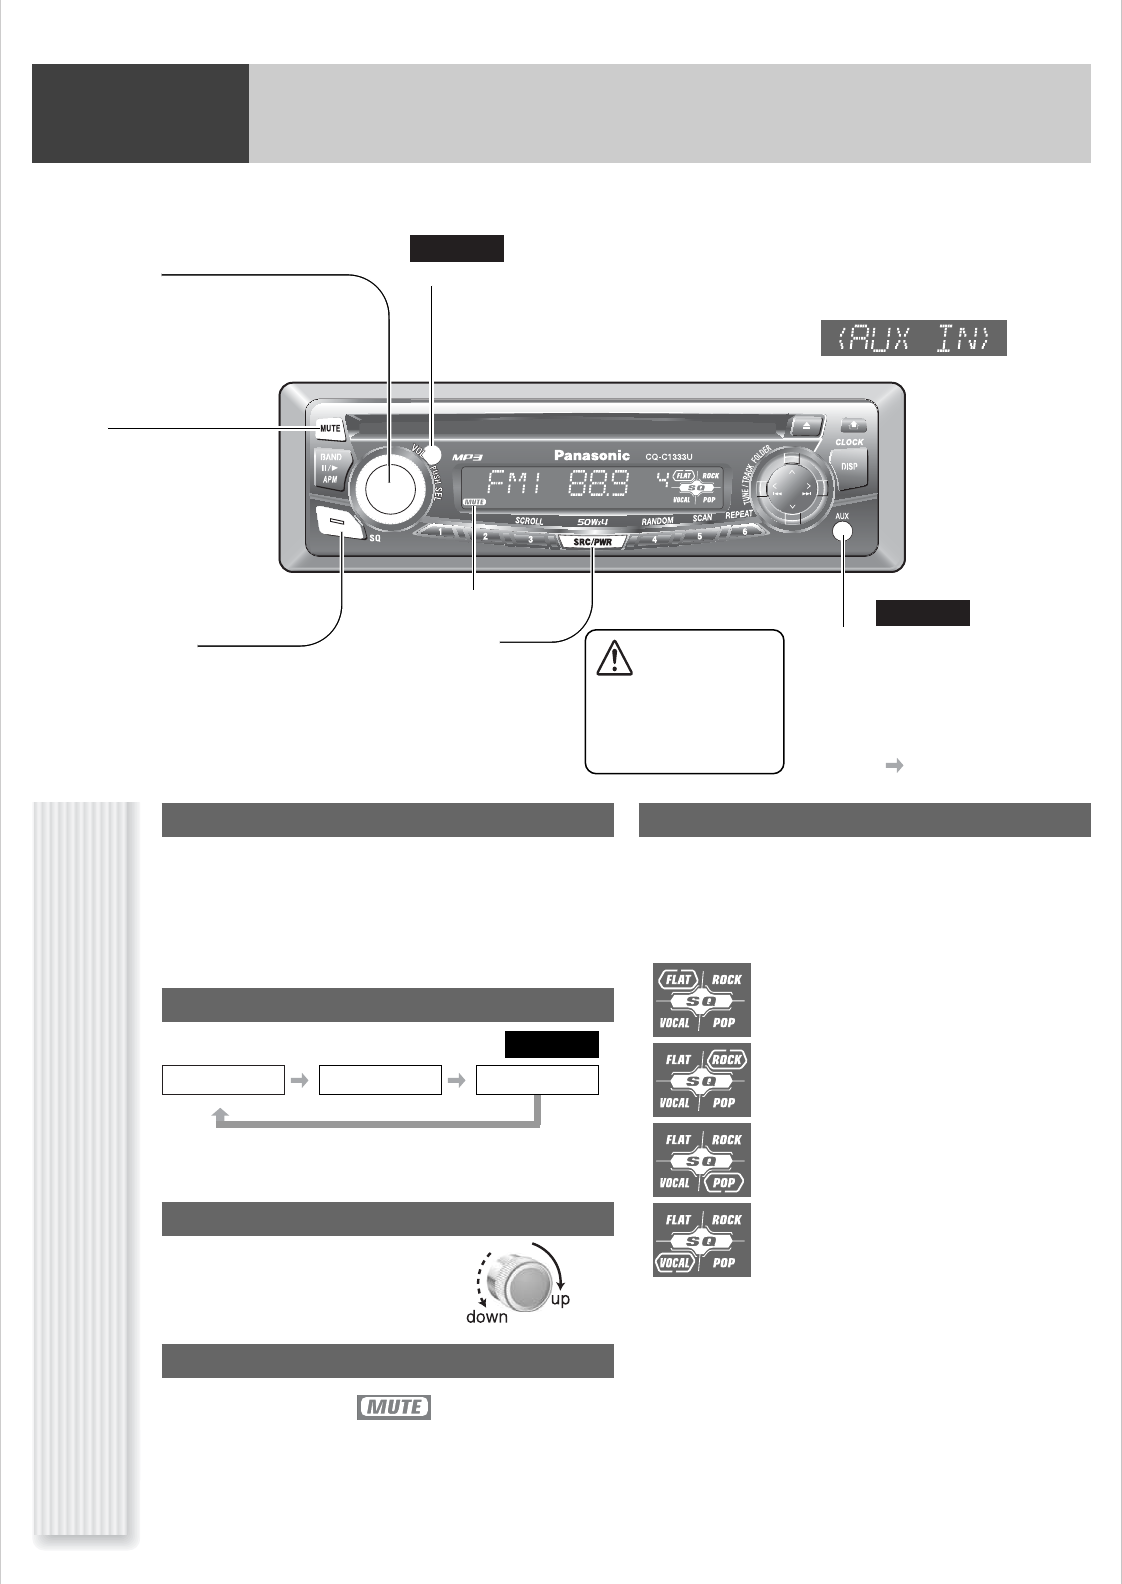 Panasonic Cq C1333u Wiring Diagram Trusted Diagrams C1301u Car Stereo House Symbols U2022 Oven Schematic